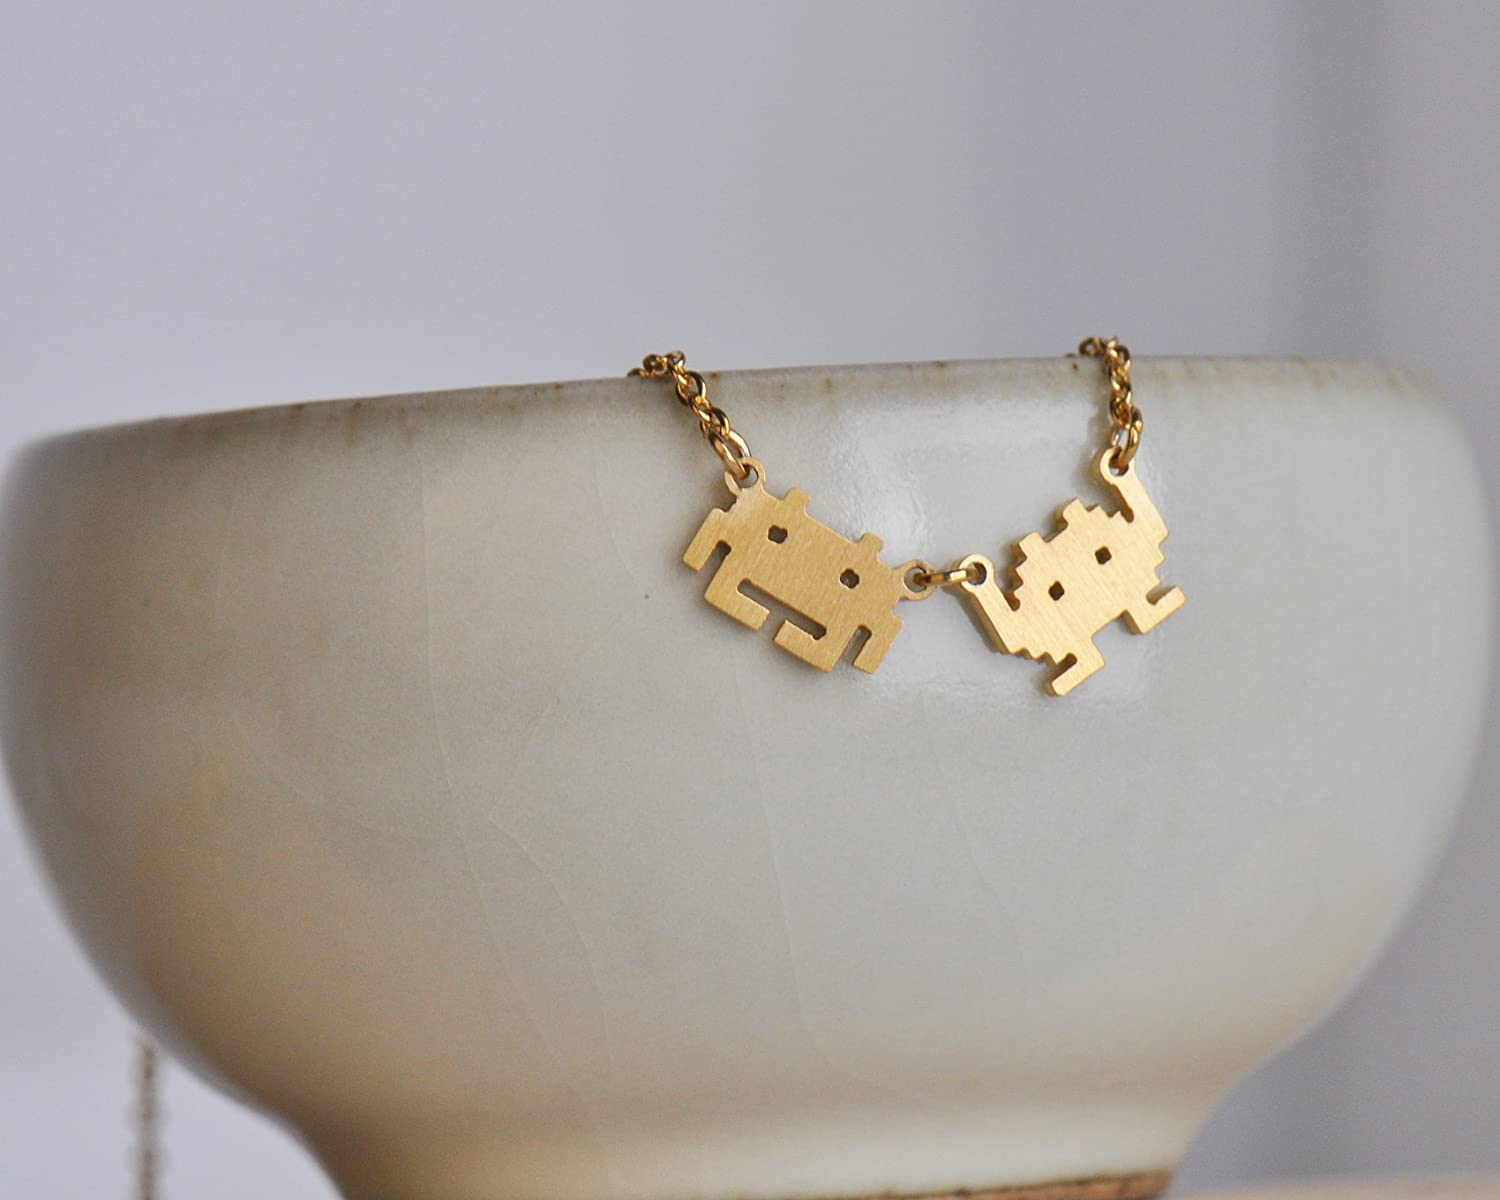 HUAN XUN Stainless Steel Couples Necklace Earrings Various Styles